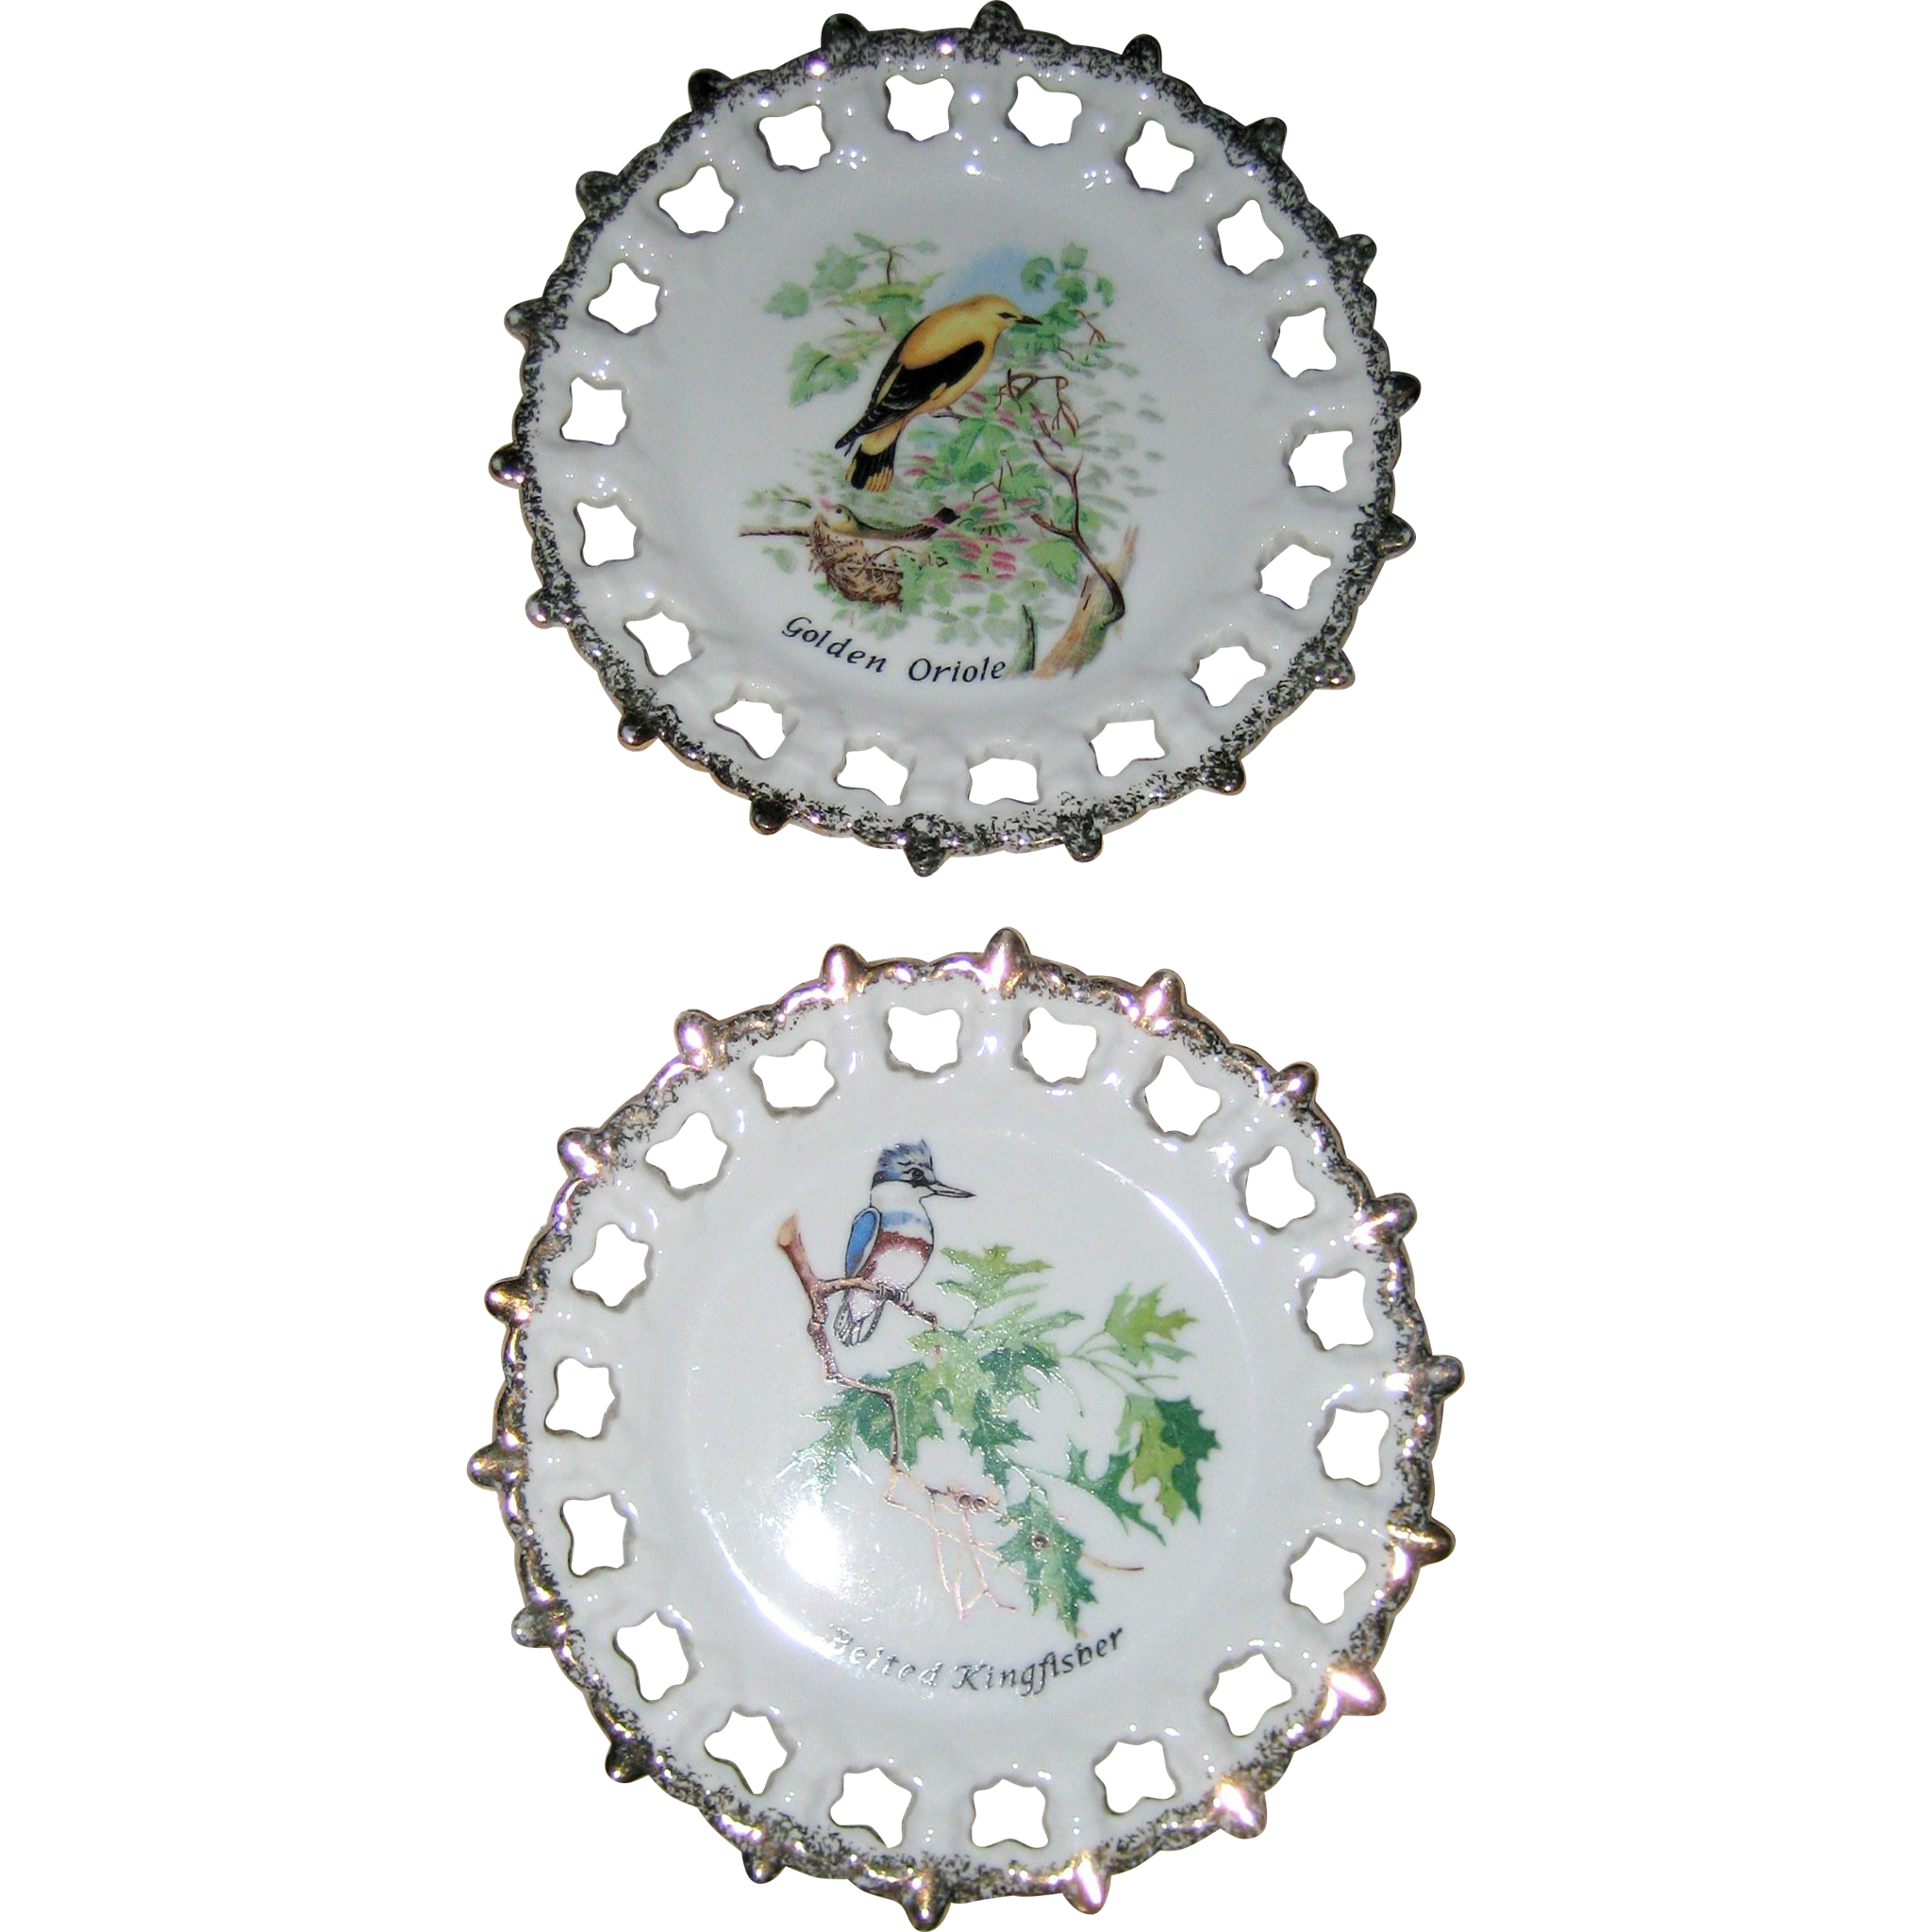 Pair of Enesco Porcelain Bird Plates with Reticulated Edge - Golden Oriole and Belted Kingfisher